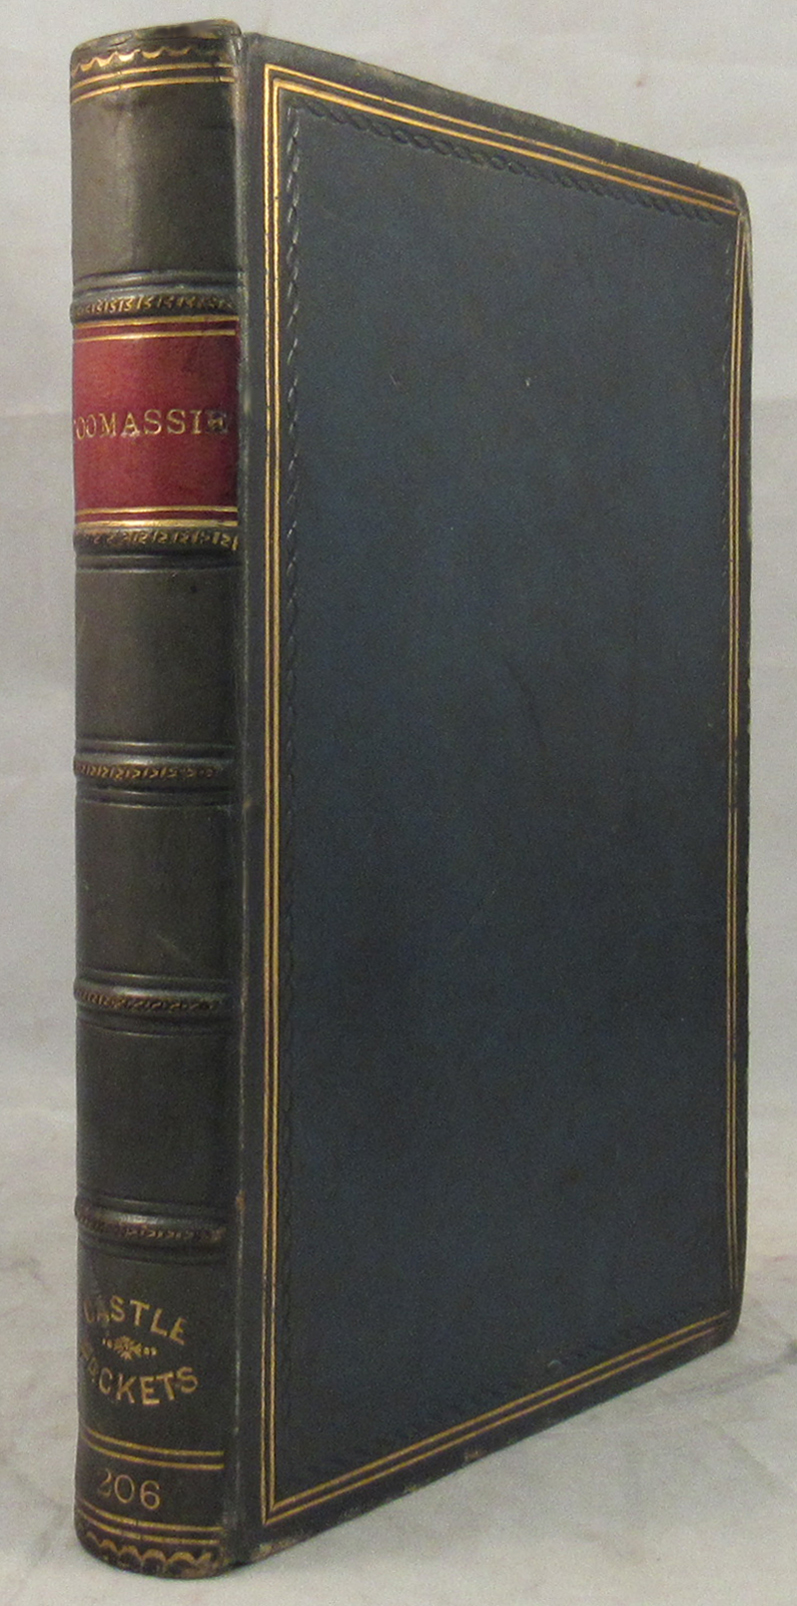 COOMASSIE: The Story of The Campaign In Africa 1878-4, Being the First Part of the Original Volume entitled 'Coomassie and Magdala'. Henry M. Stanley.